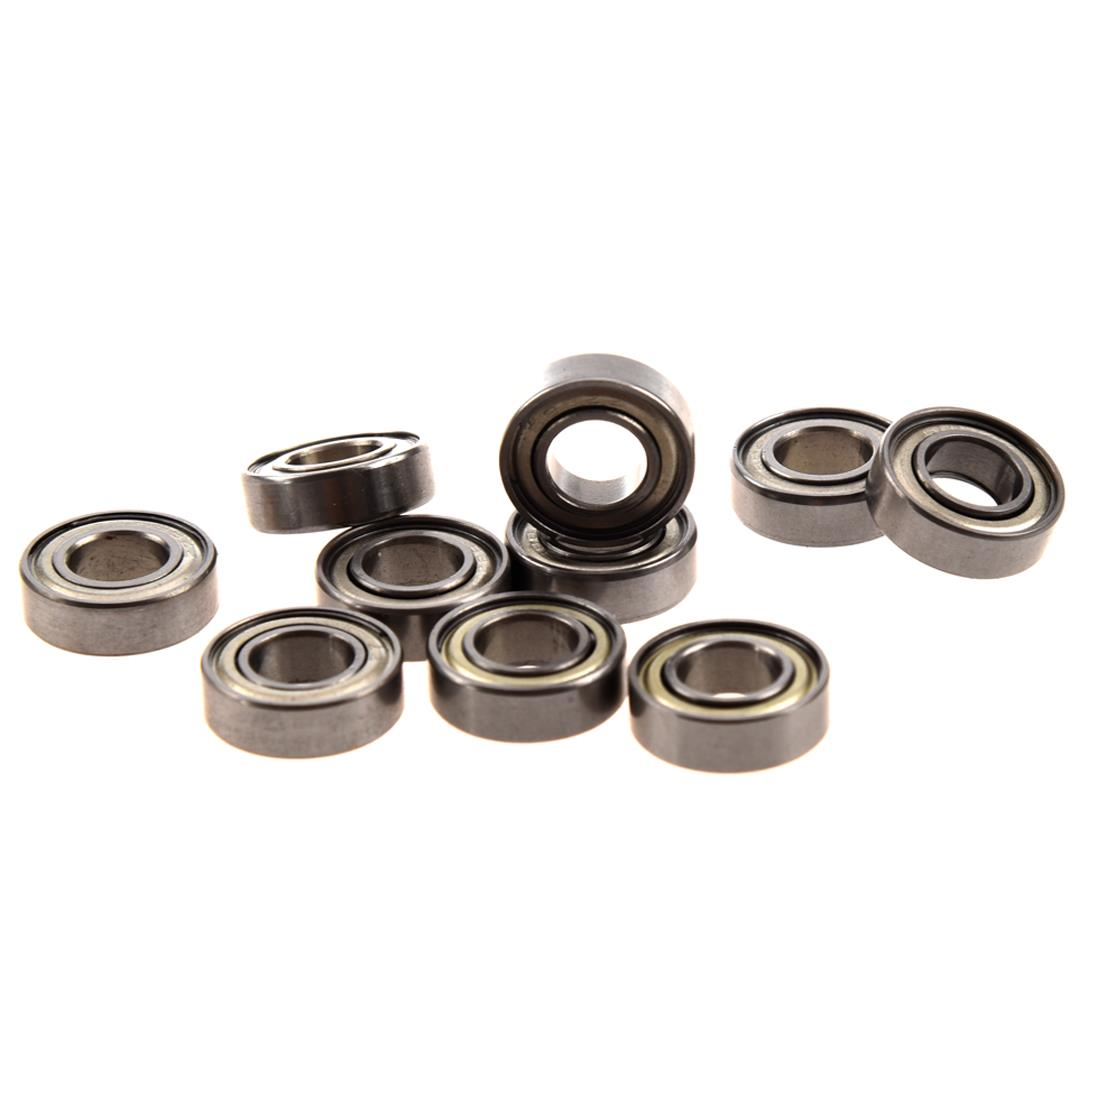 New-10 Pcs 698Z 8 x 19 x6mm Single Row Sealed Deep Groove Ball Bearings image